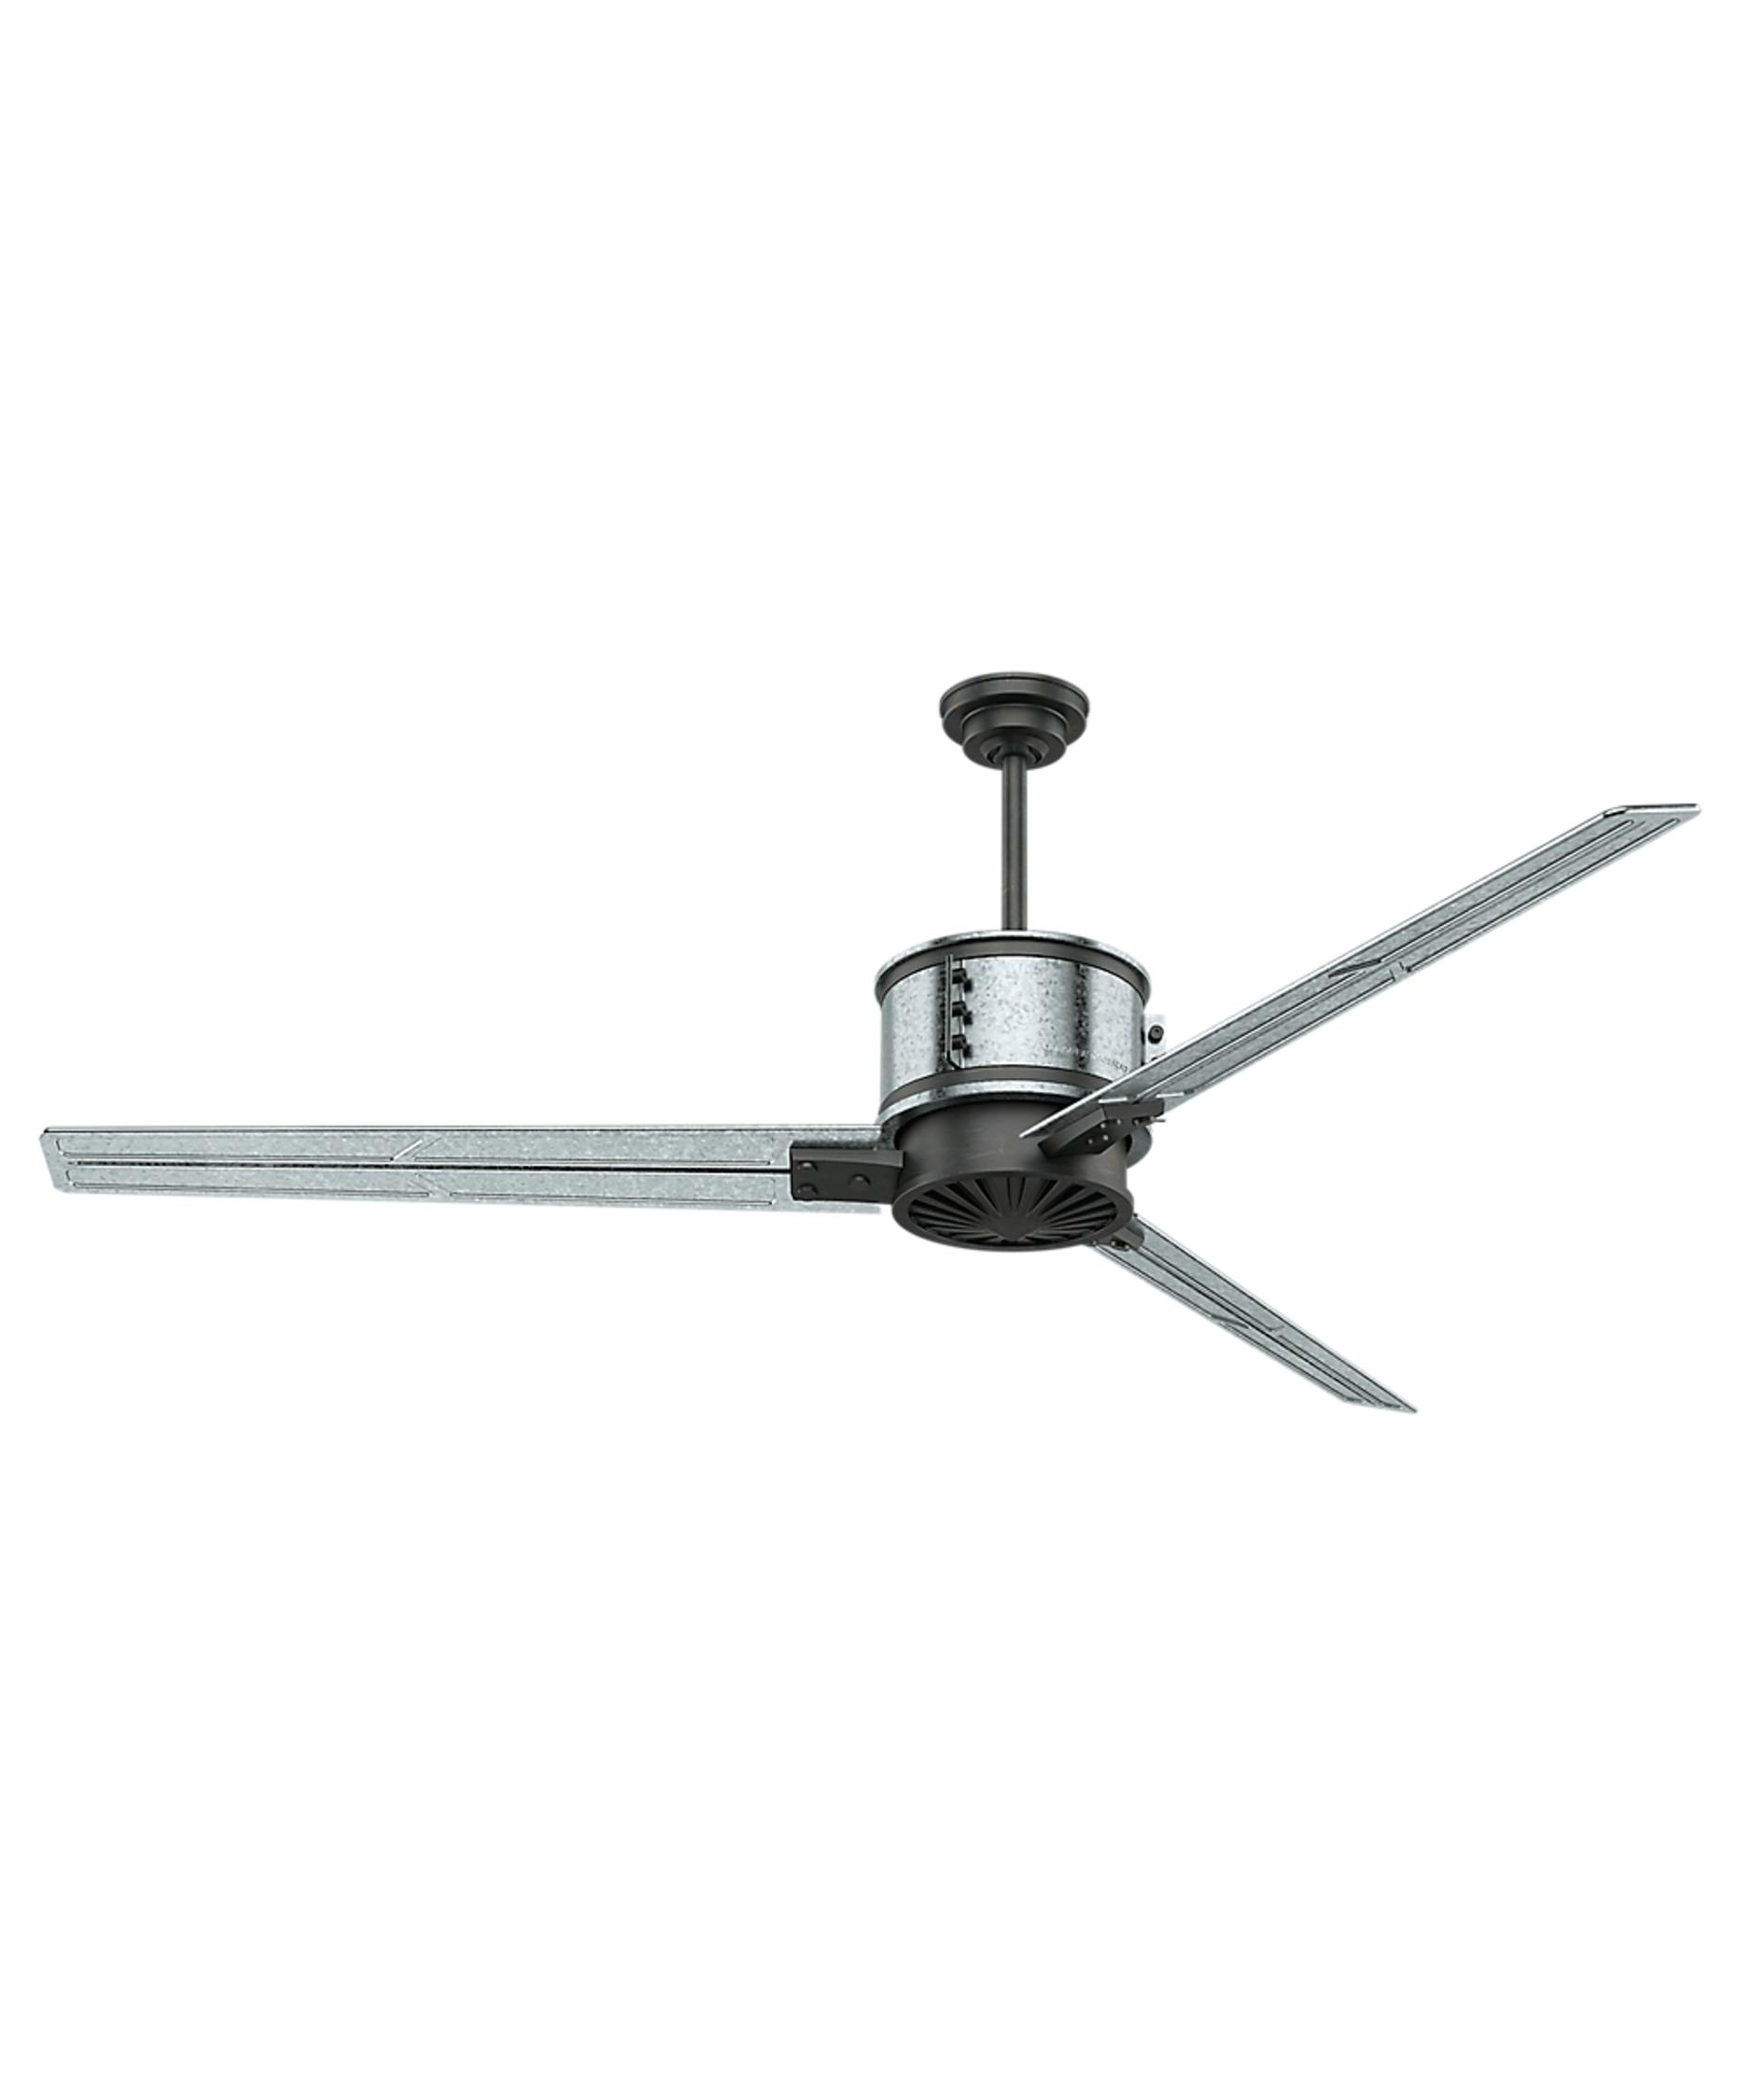 72 Inch Outdoor Ceiling Fans With Light With Regard To Well Known Casablanca 59193 Duluth 72 Inch 3 Blade Ceiling Fan (View 6 of 20)